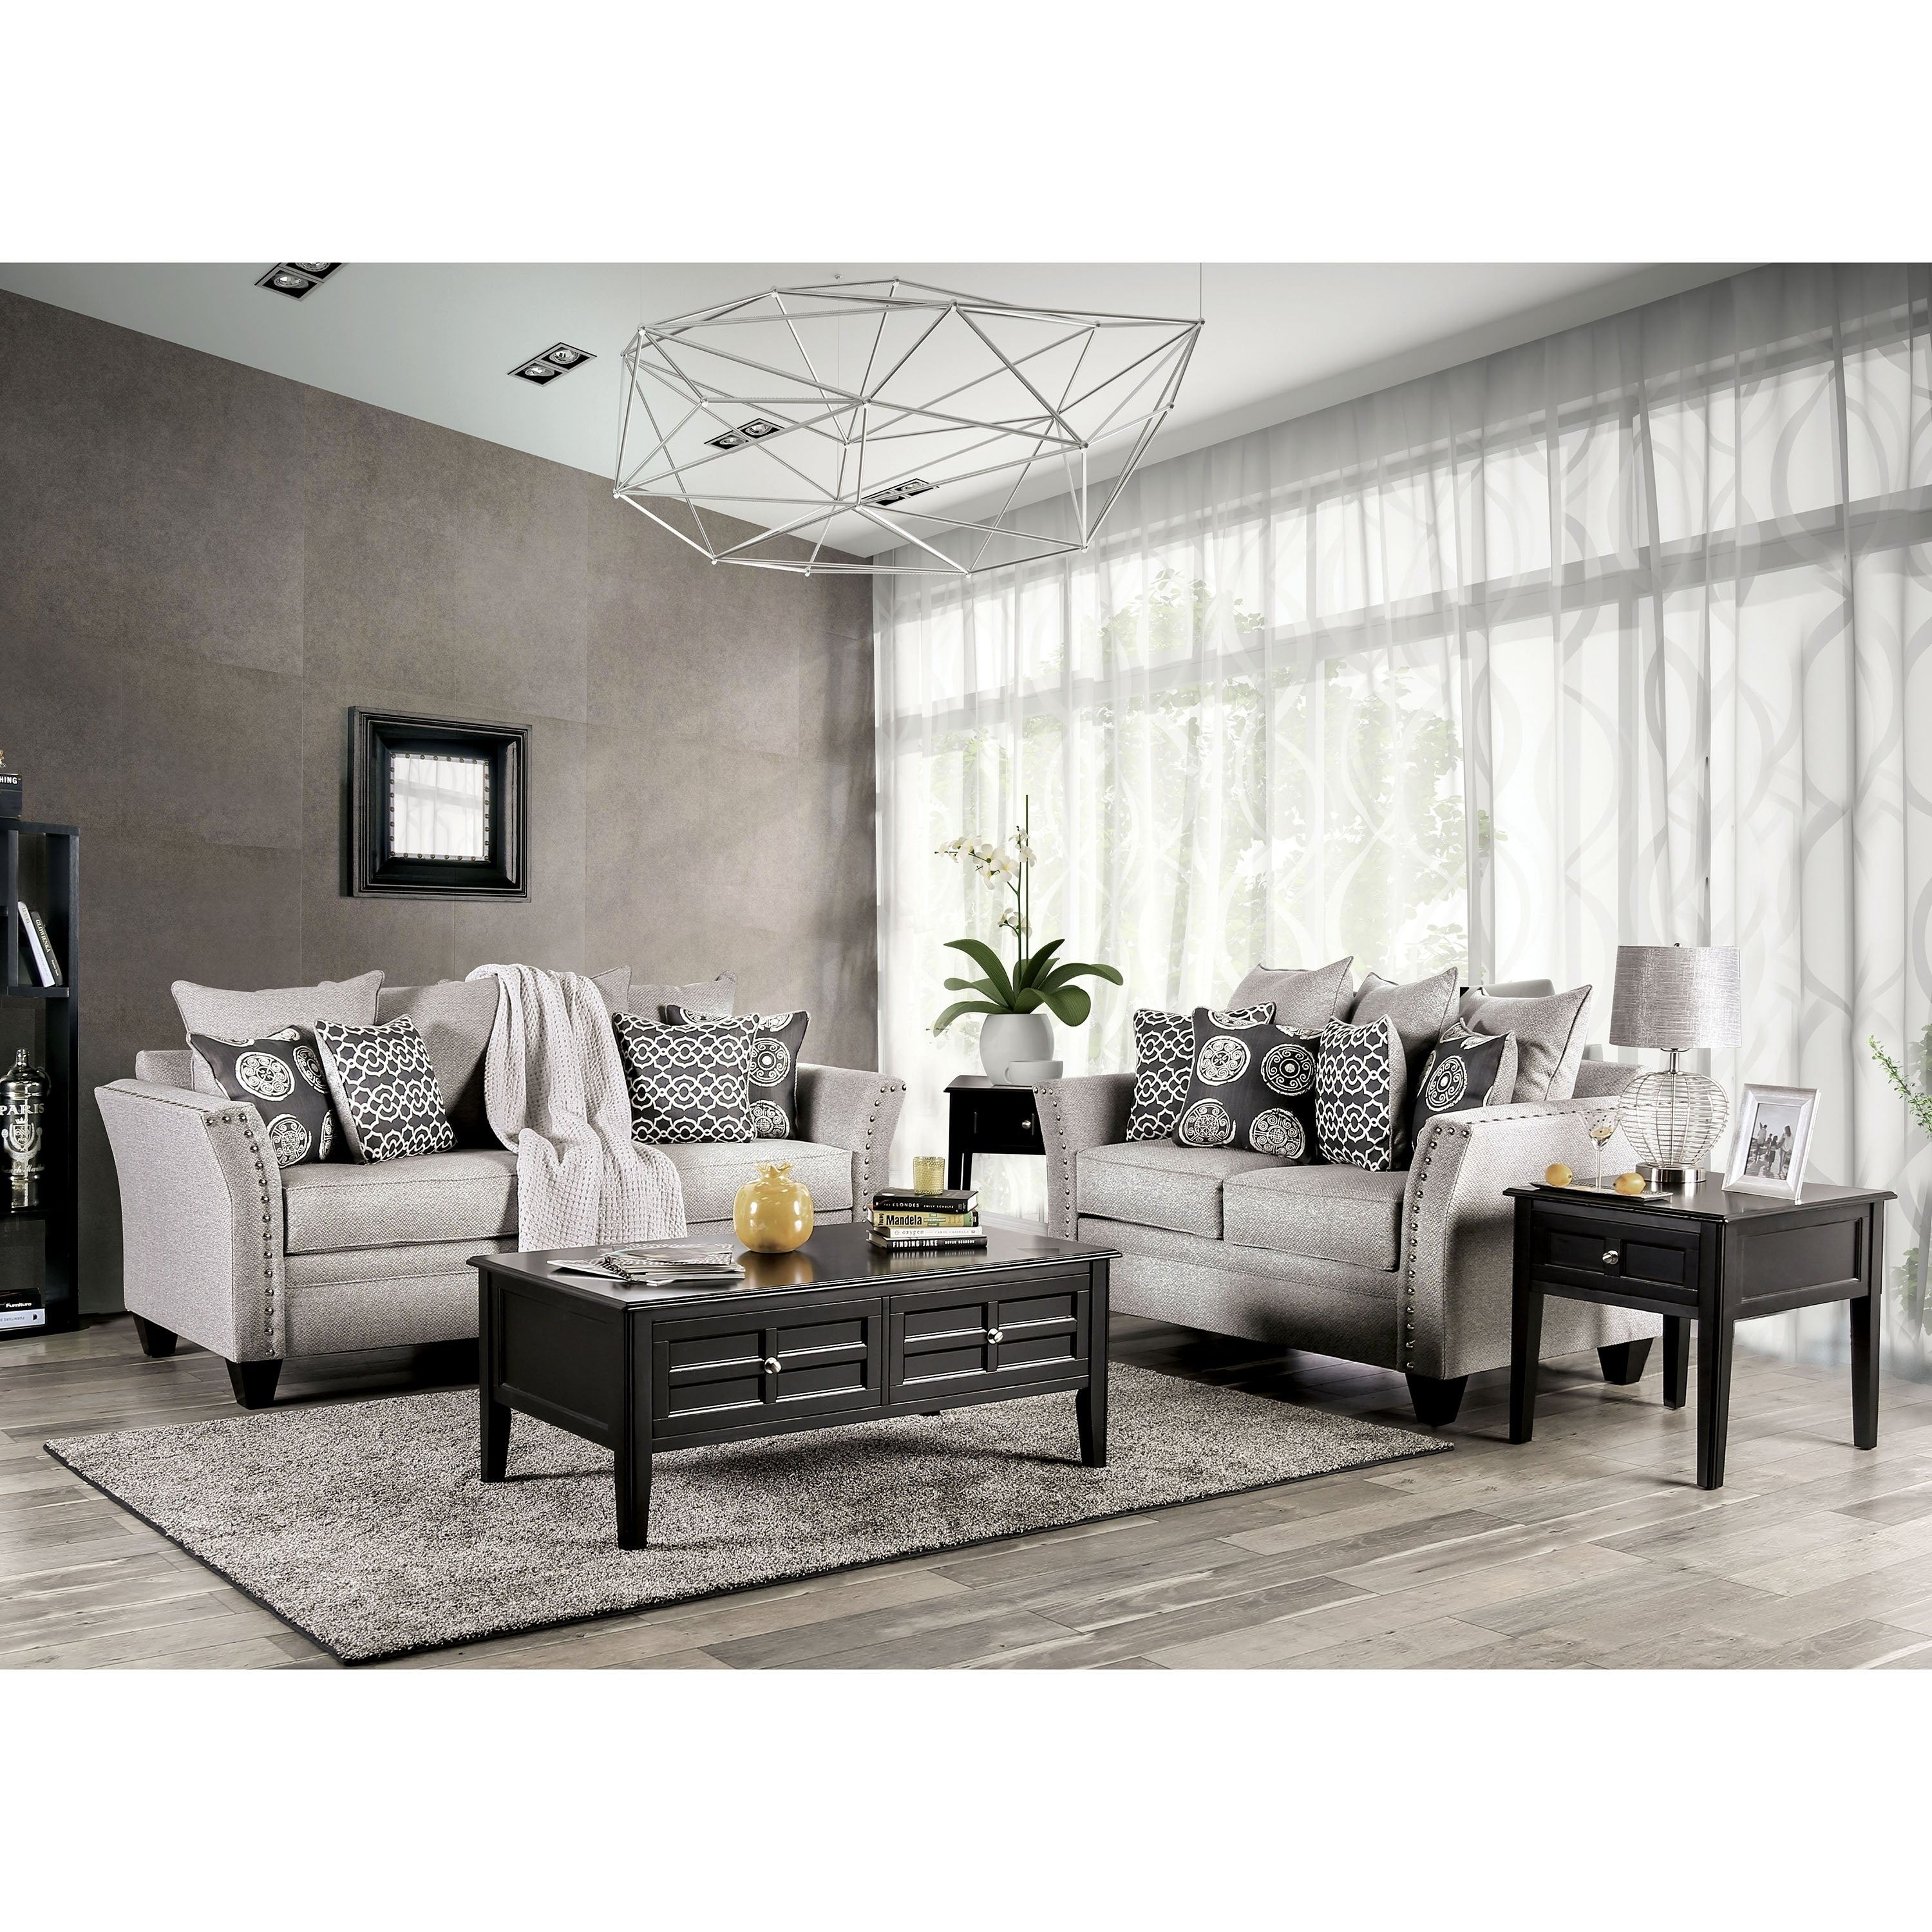 Shop lawanda contemporary grey 2 piece nailhead living room set by foa free shipping today overstock 28408384